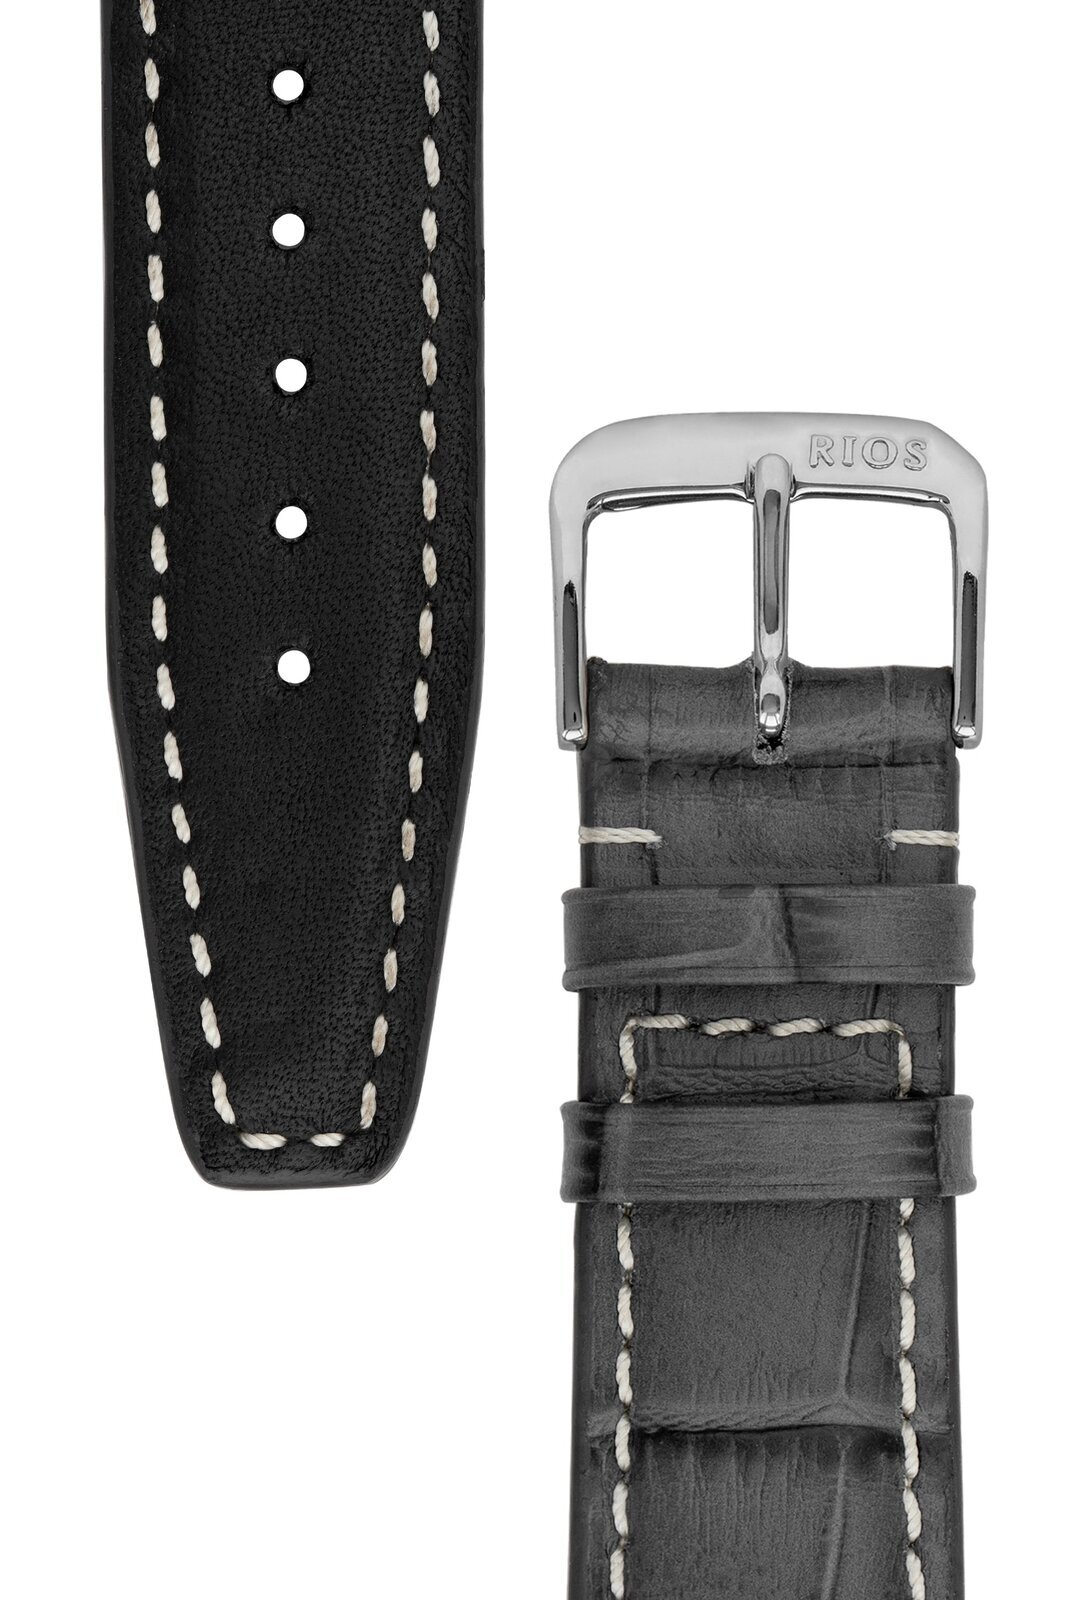 Rios1931 BOSTON Alligator-Embossed Leather Watch Strap in STONE GREY